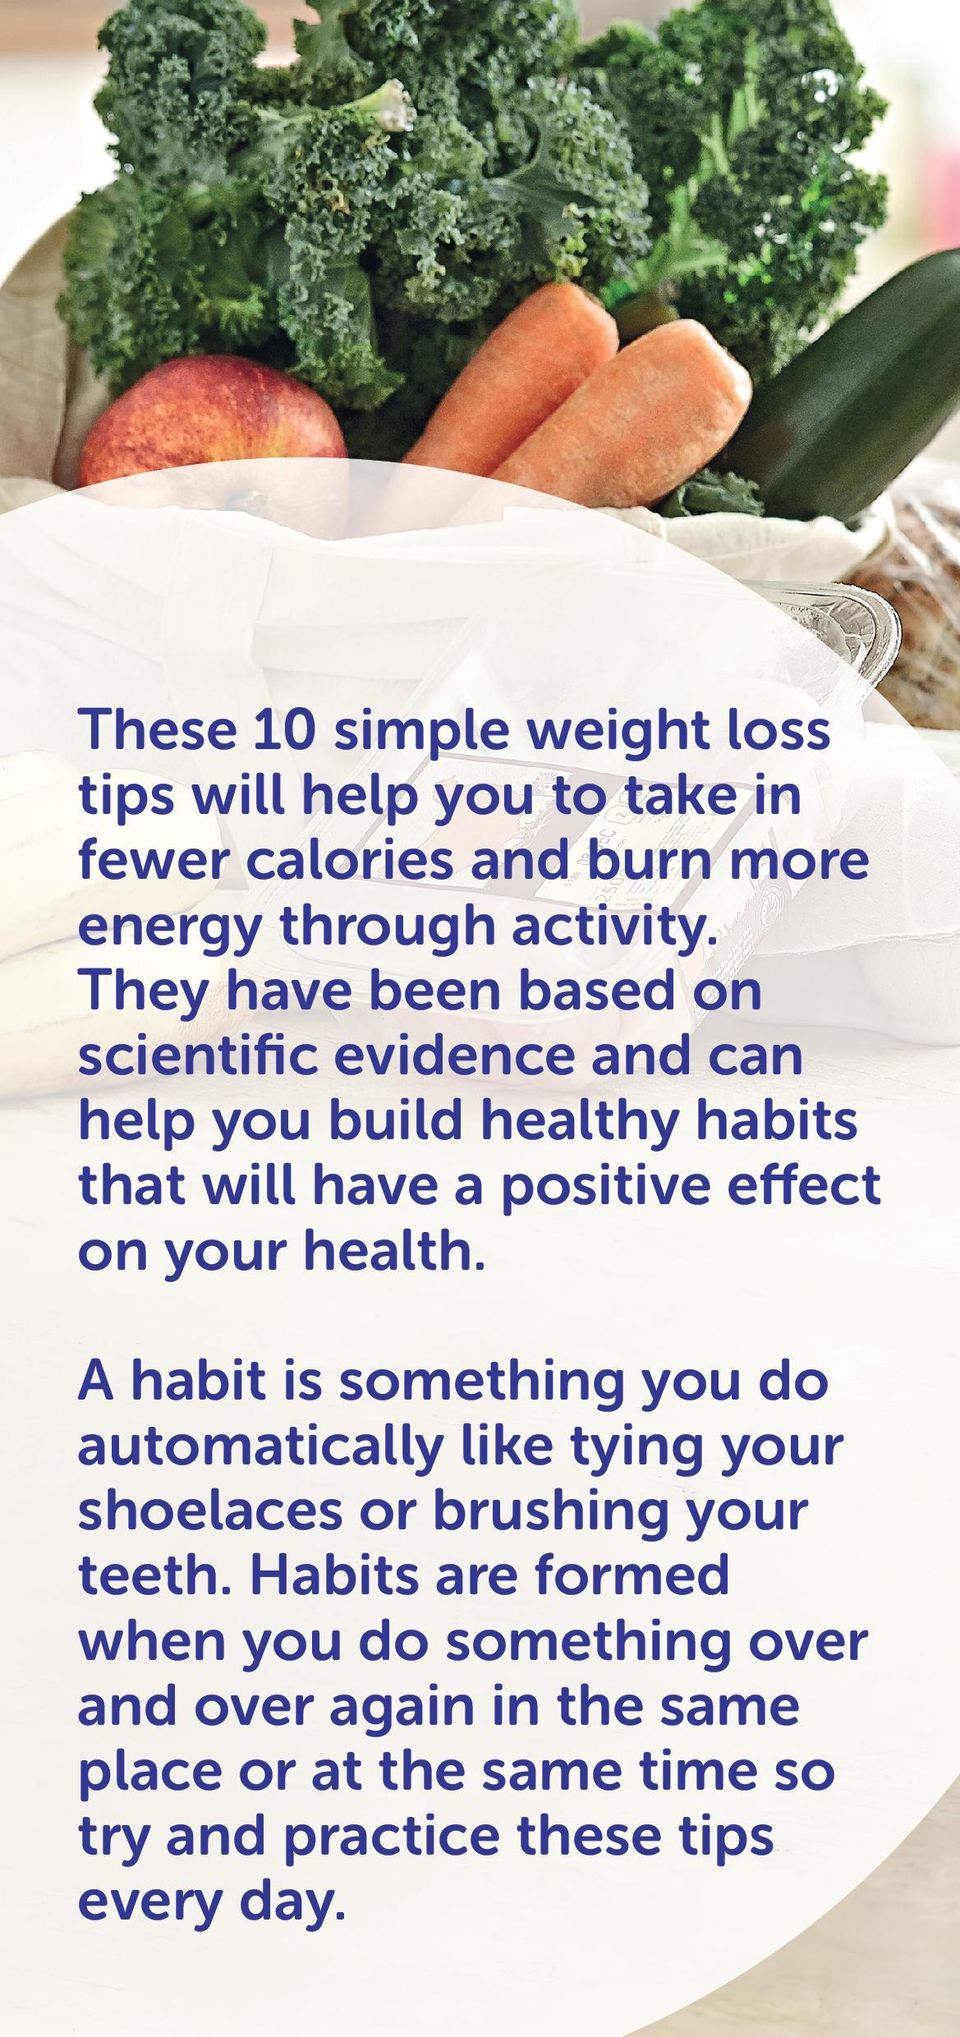 your health. A habit is something you do automatically like tying your shoelaces or brushing your teeth.